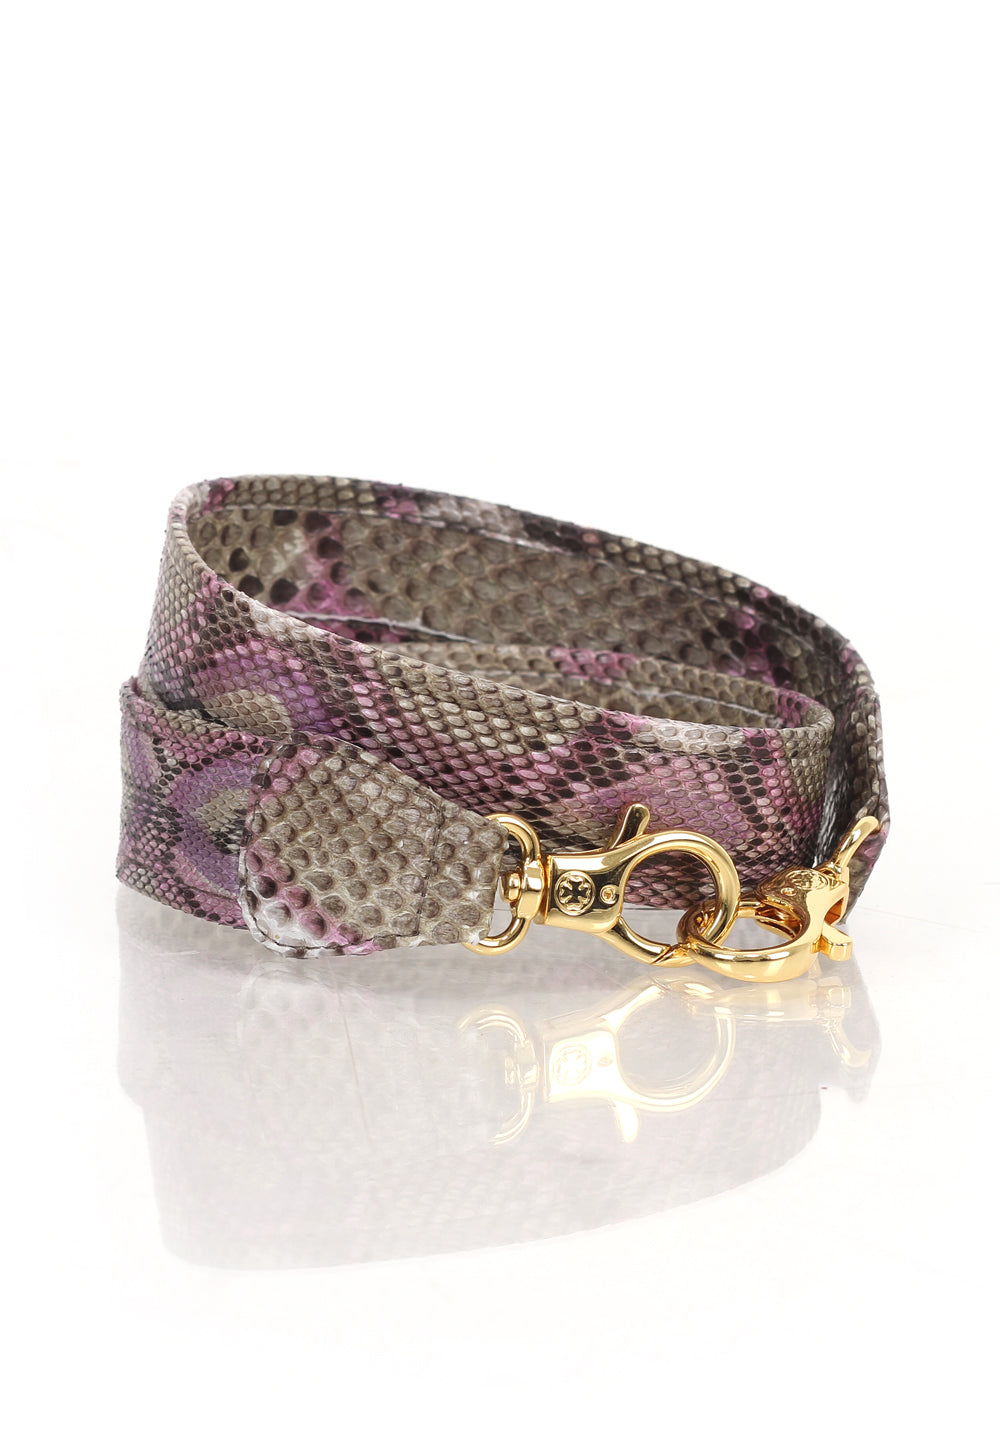 Ombre Python Skin Leather Strap (Lilac)